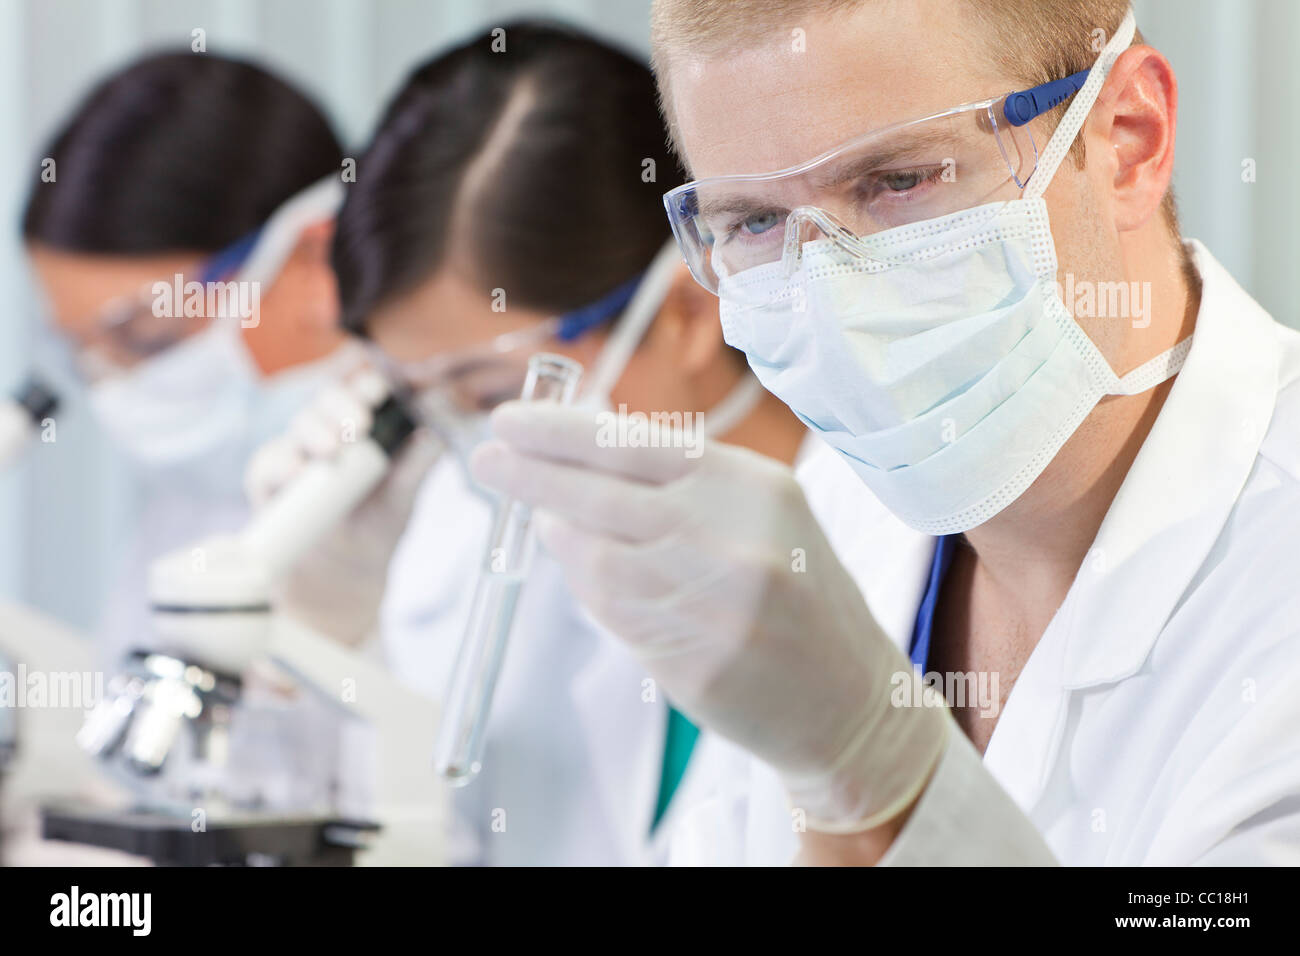 A male medical or scientific researcher or doctor looking at a test tube of clear liquid in a laboratory with microscopes - Stock Image